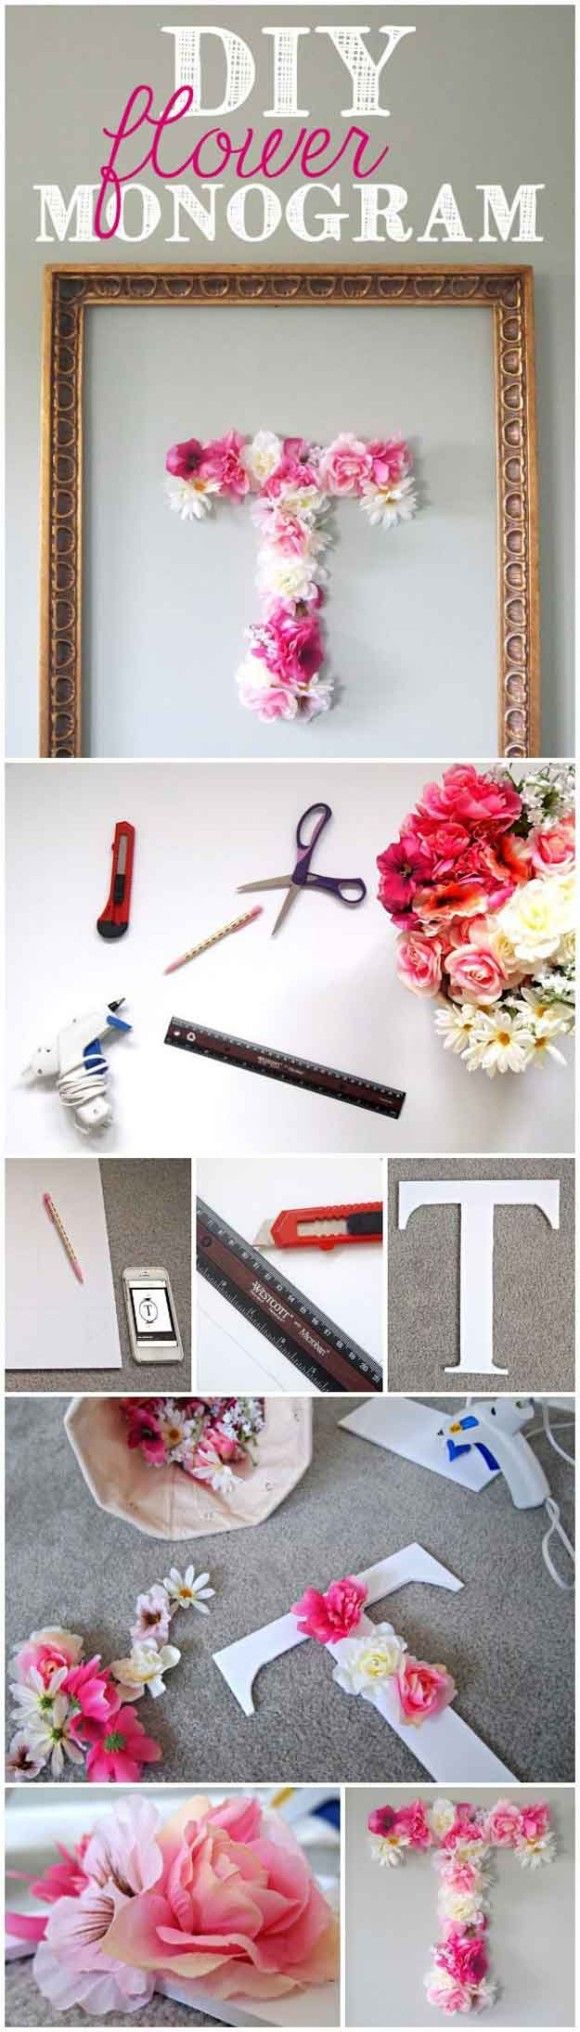 Cute DIY Room Decor Ideas for Teens - DIY Bedroom Projects for Teenagers - DIY Flower Monogram Craft